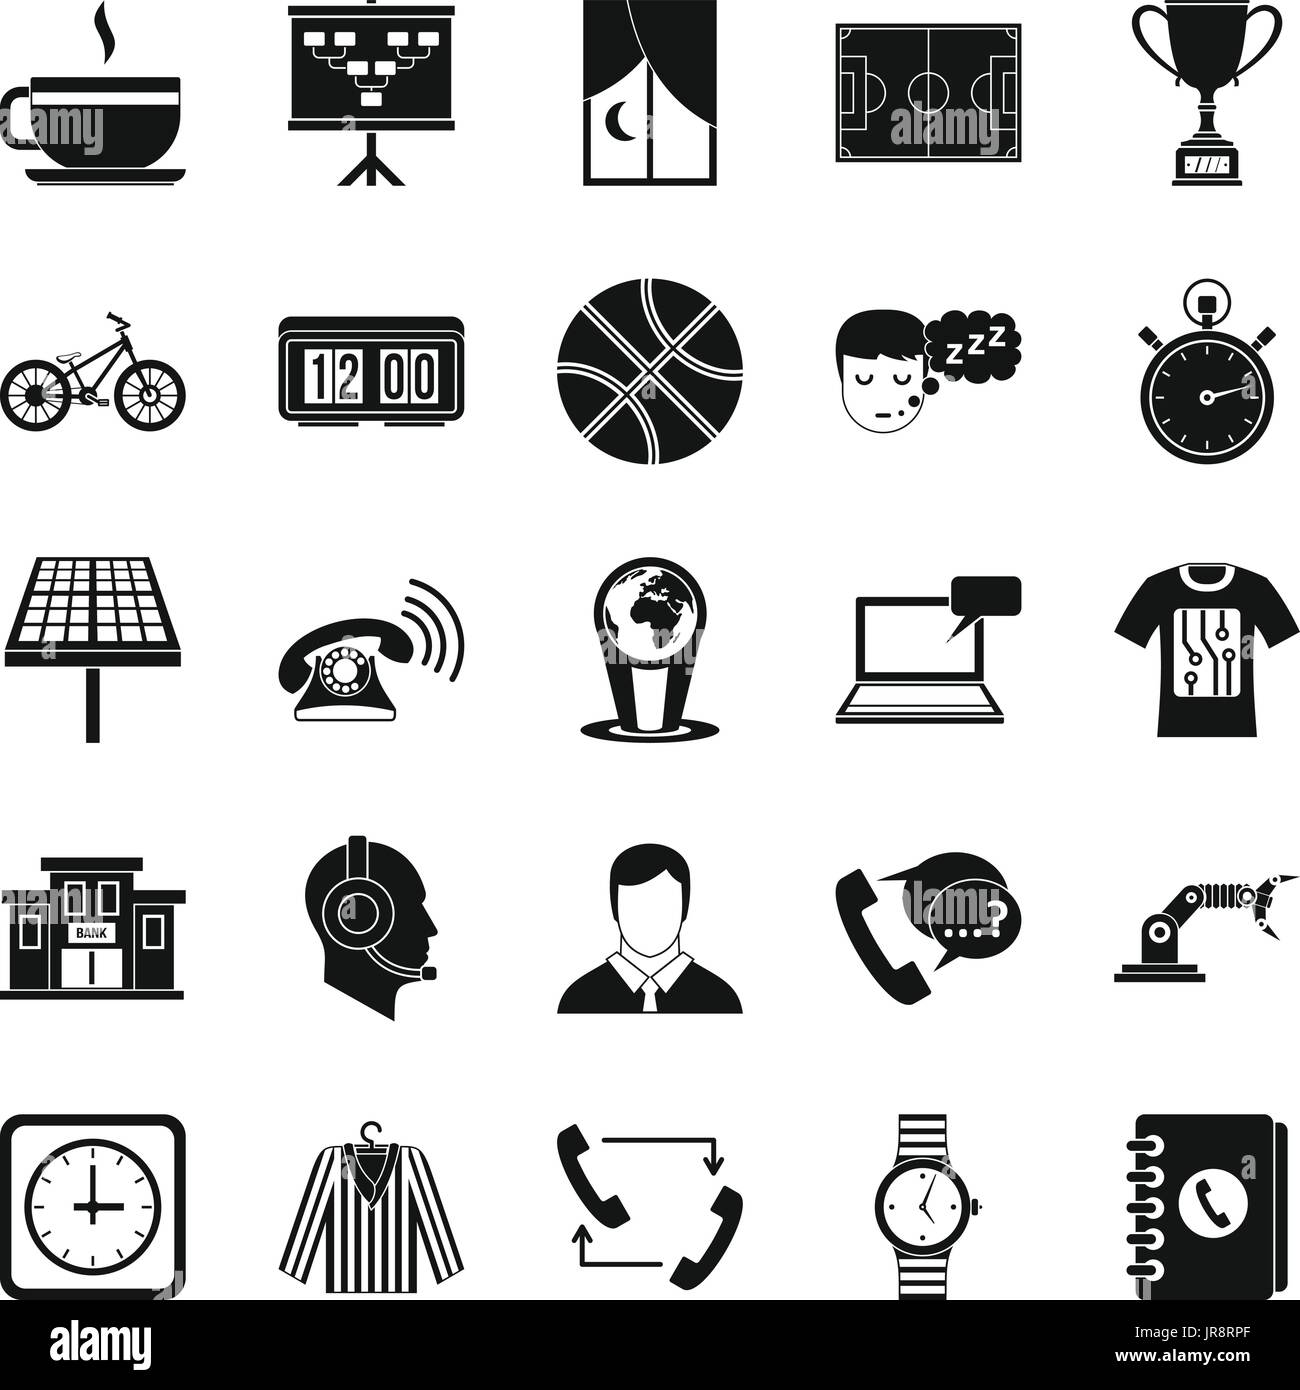 Timepiece icons set, simple style - Stock Image